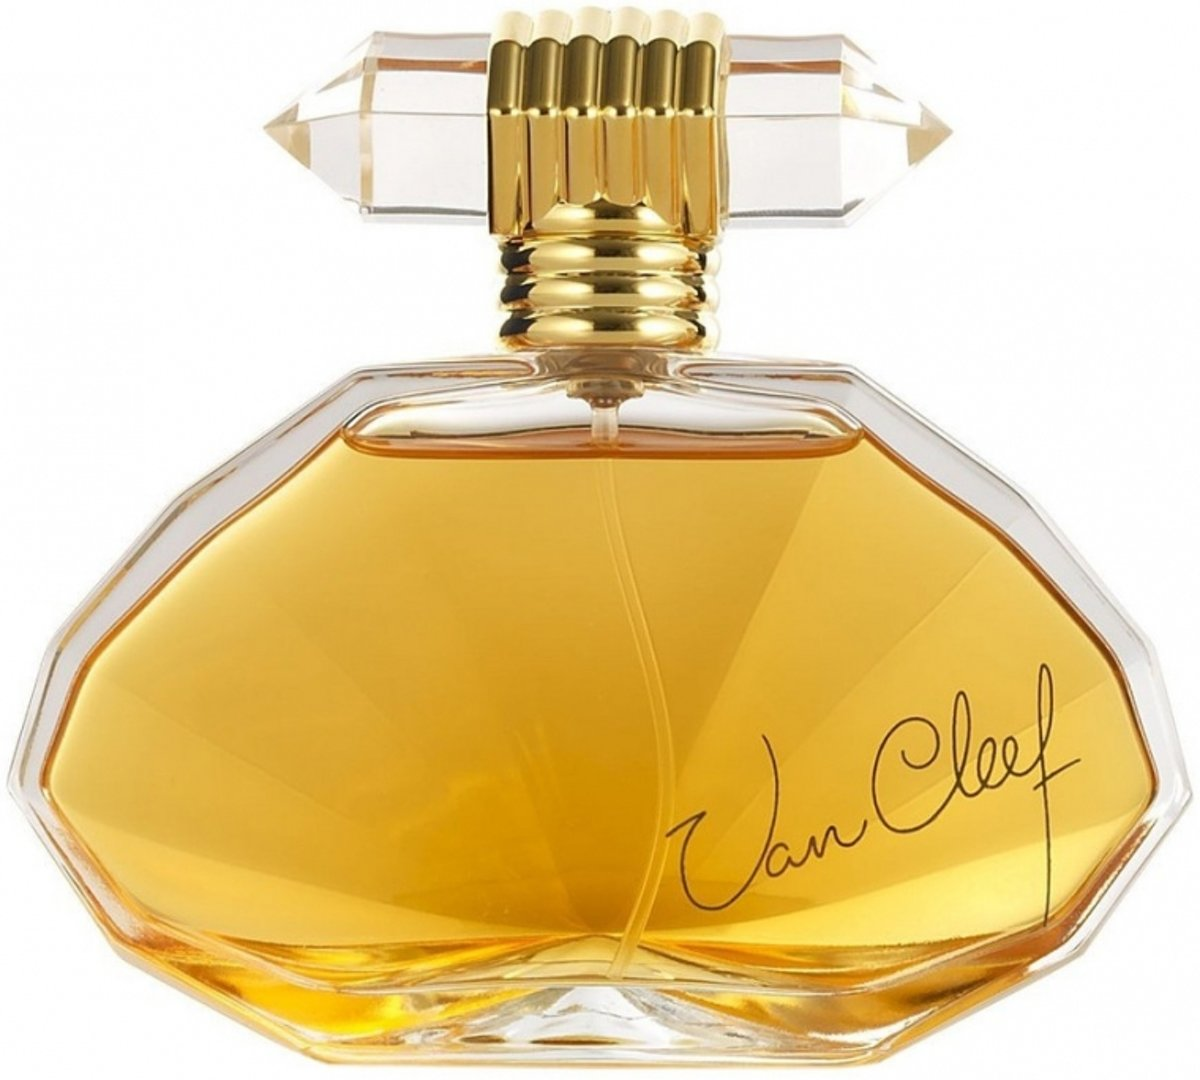 Van Cleef & Arpels Van Cleef for Women - 100 ml - Eau de parfum